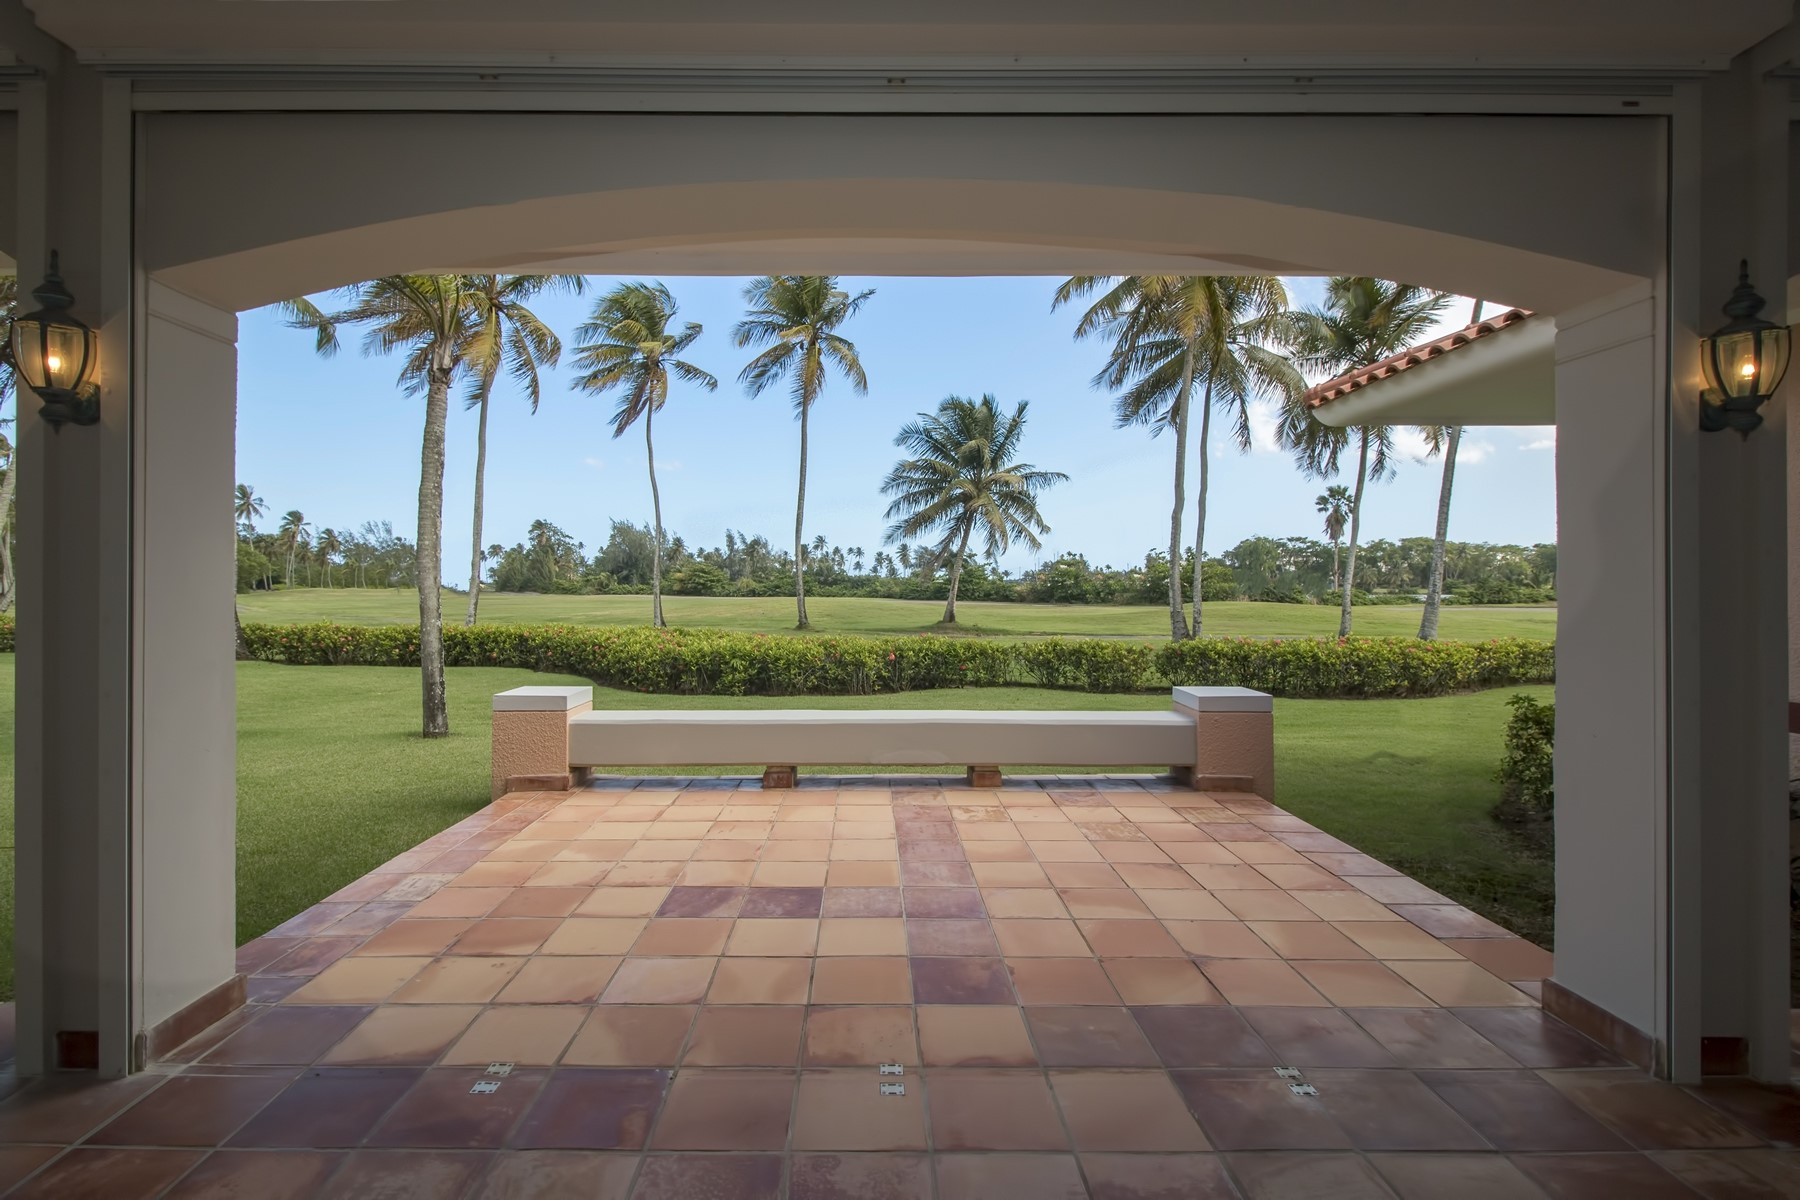 Additional photo for property listing at Mediterranean Villa at The Greens 3 Green Villas Drive Dorado Beach, Puerto Rico 00646 プエルトリコ